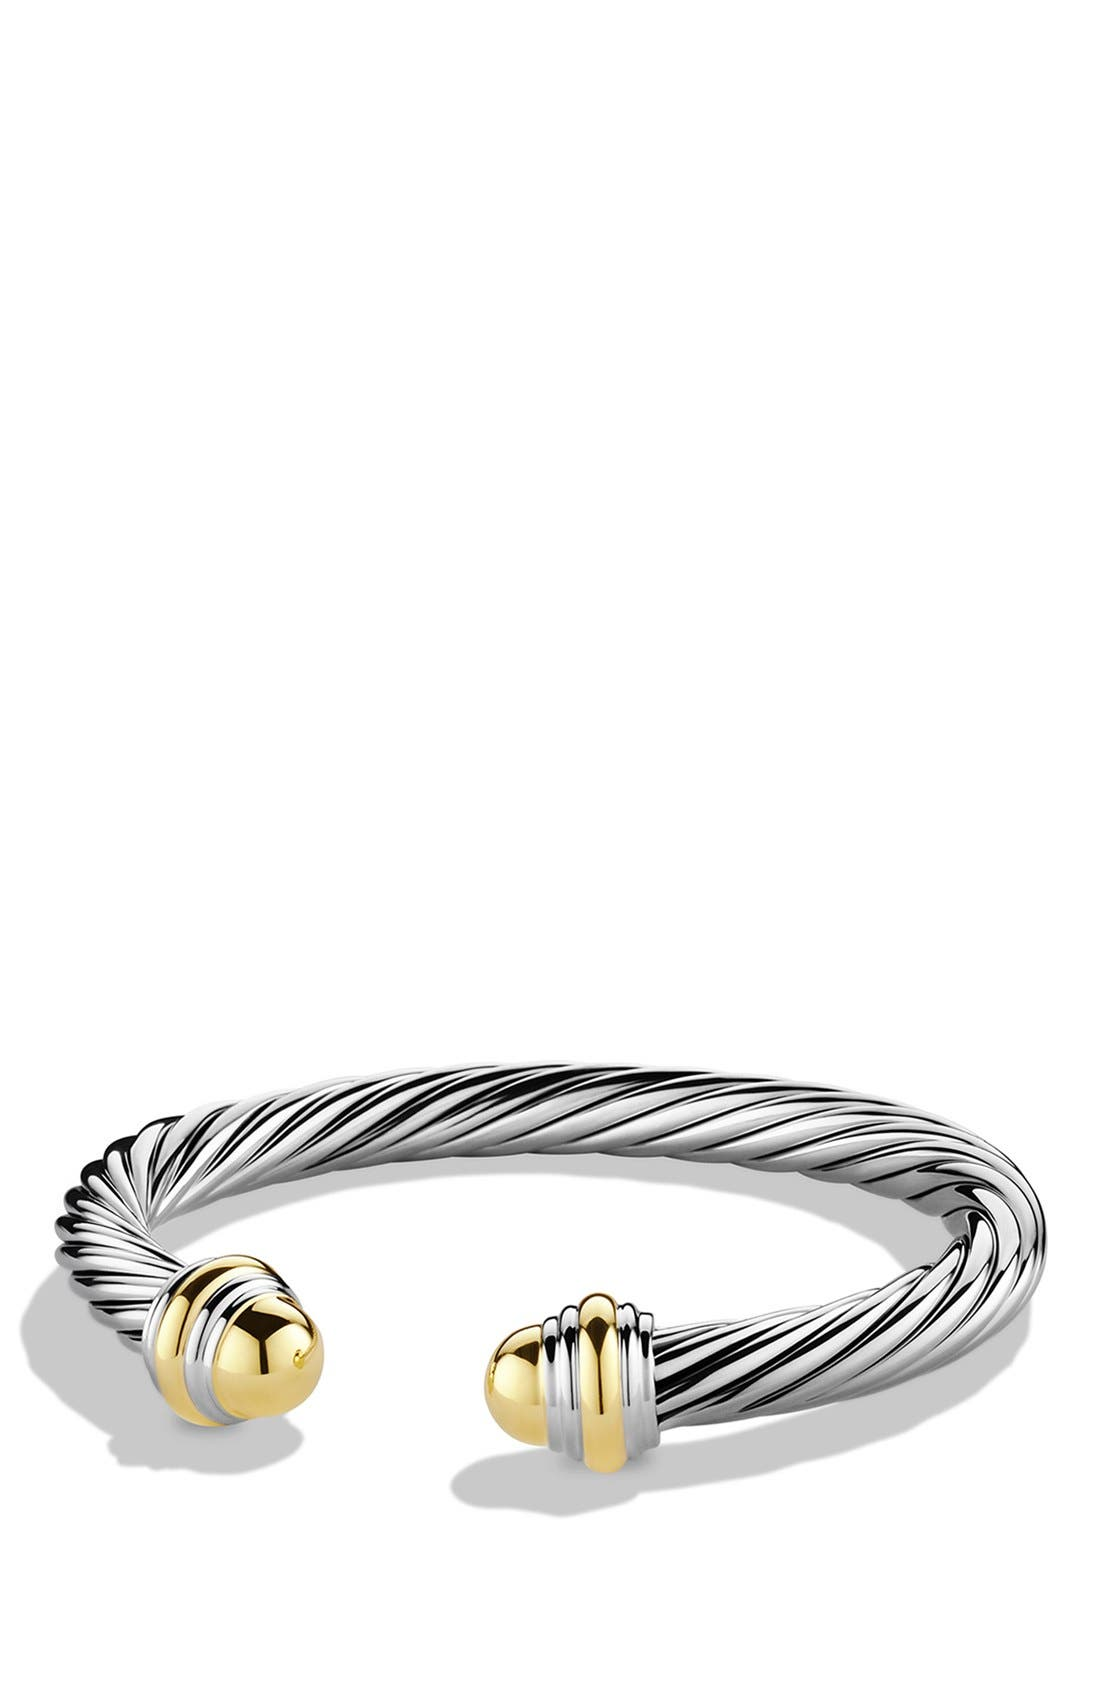 DAVID YURMAN Cable Classics Bracelet with 14K Gold, 7mm, Main, color, GOLD DOME